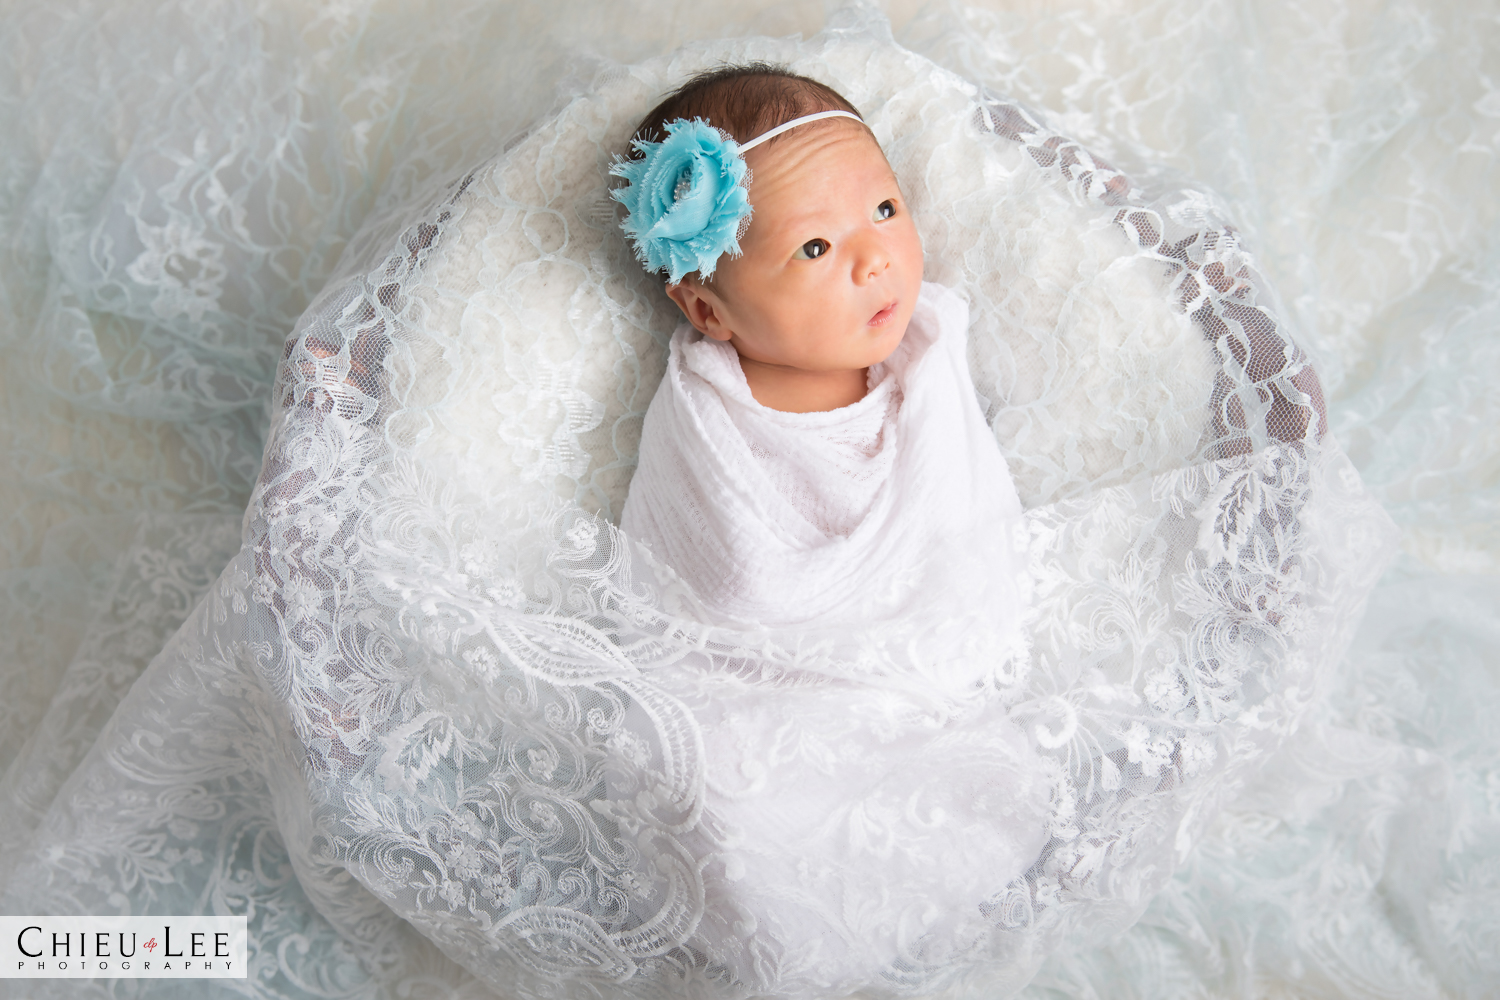 Newborn baby girl awake eyes open full body teal blue green turquoise headband with white wrap on white lace and white blanket